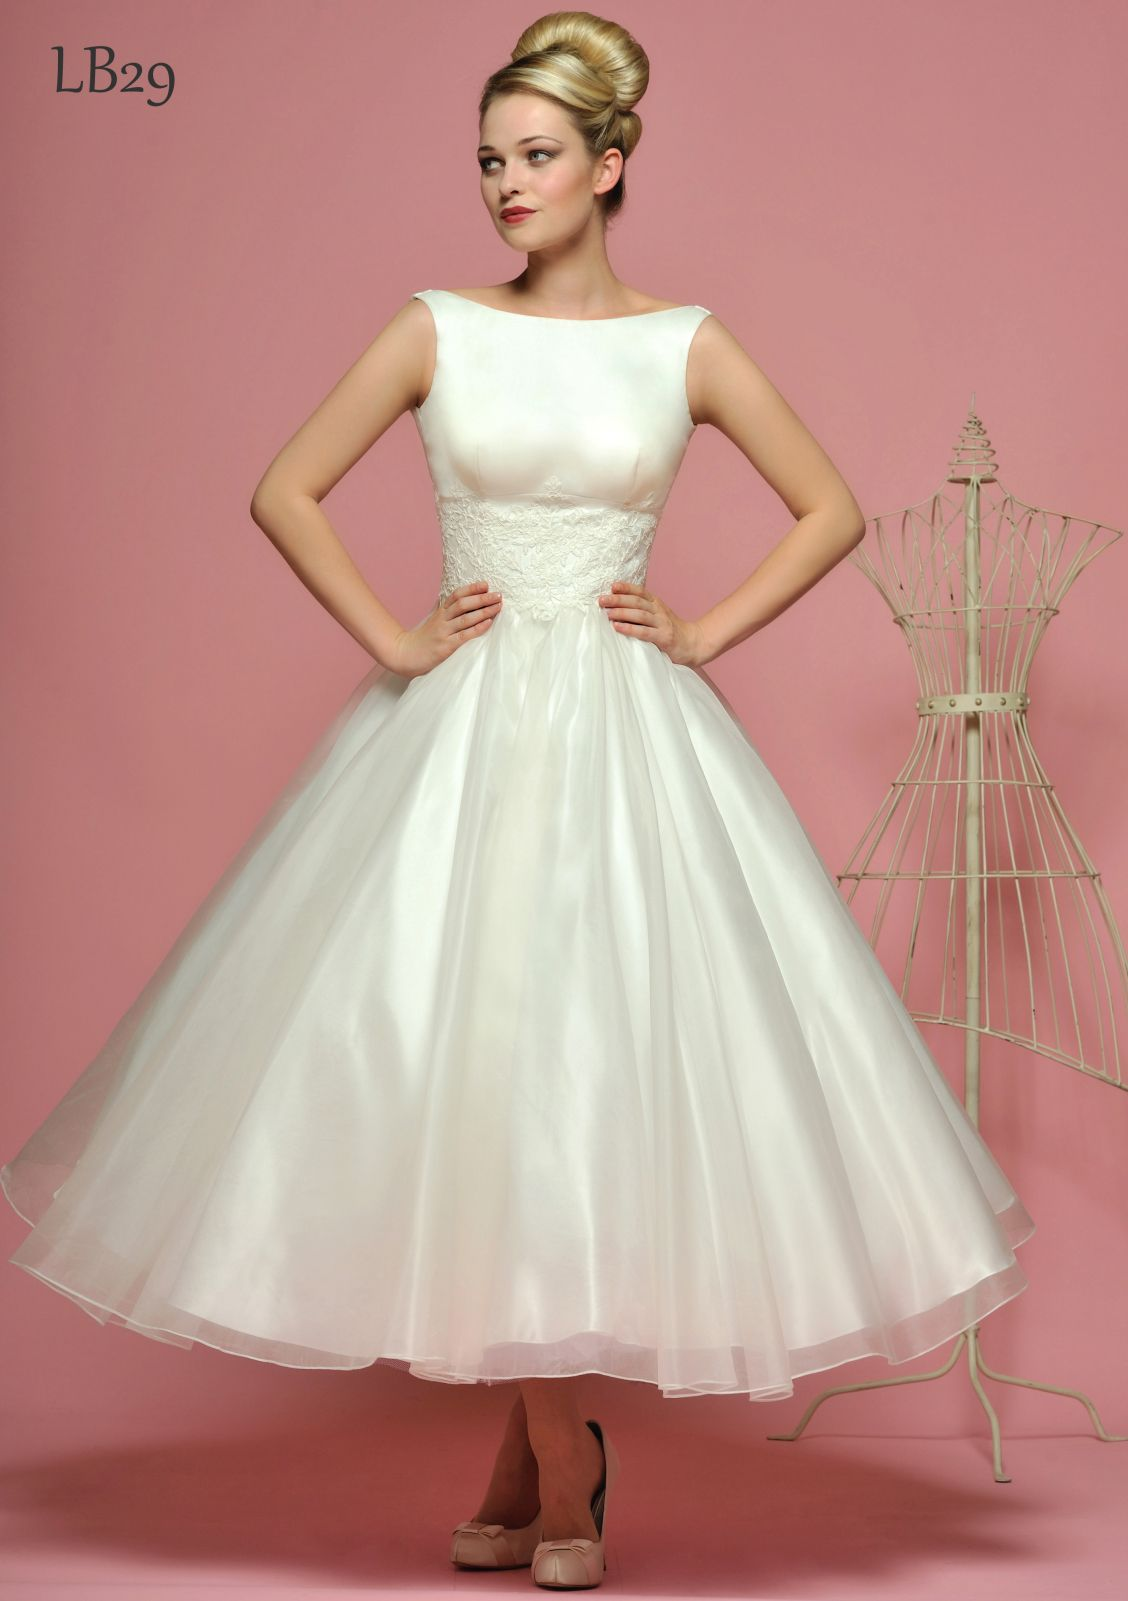 Very fifties. Lou Lou Bridal. | Fashions from the Past | Pinterest ...